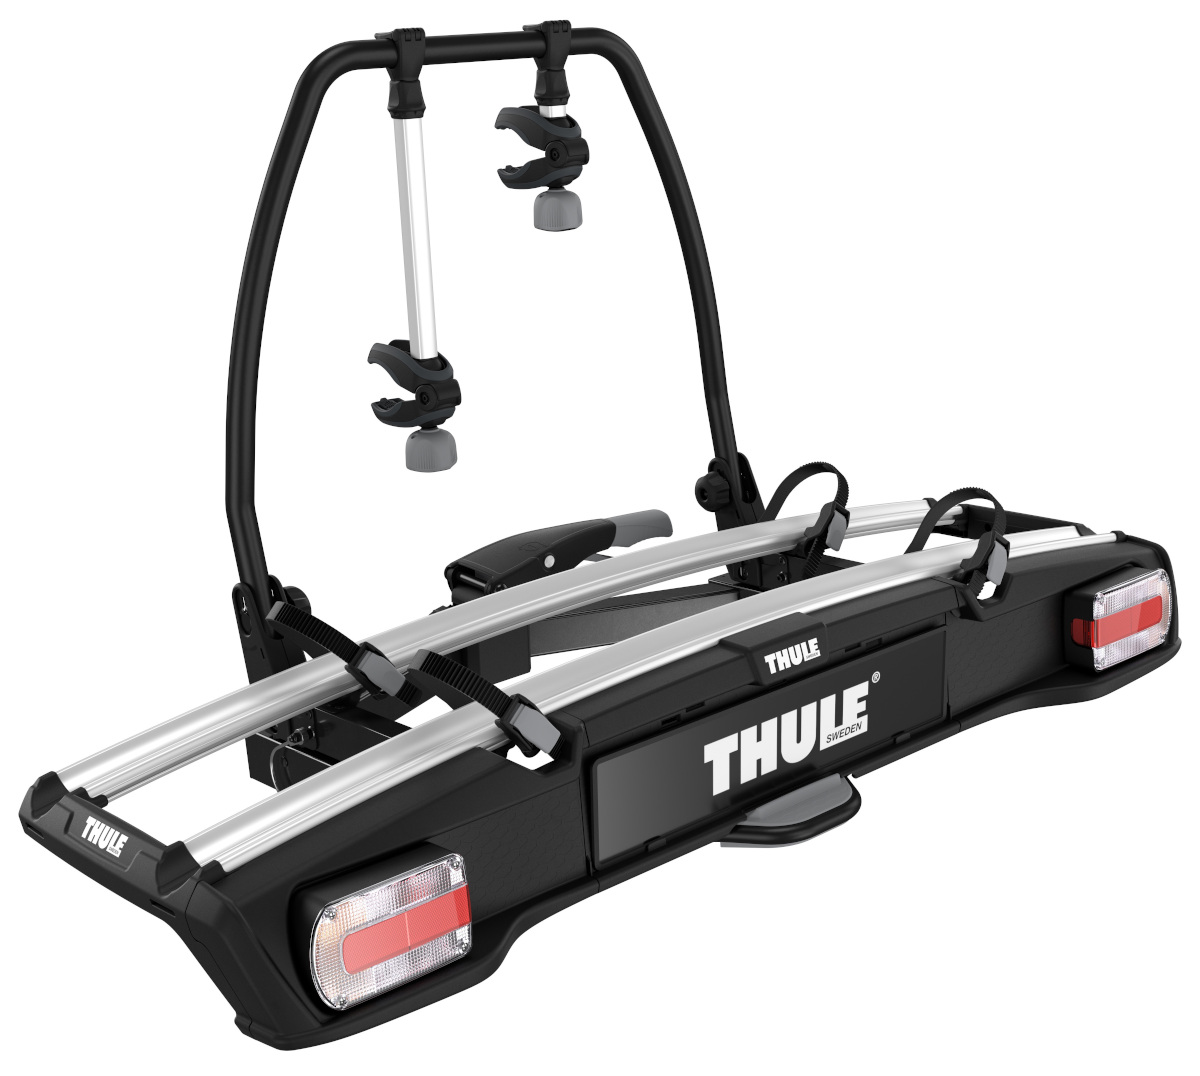 Thule 918 Velospace 2-bike Towball Carrier 7-pin Black